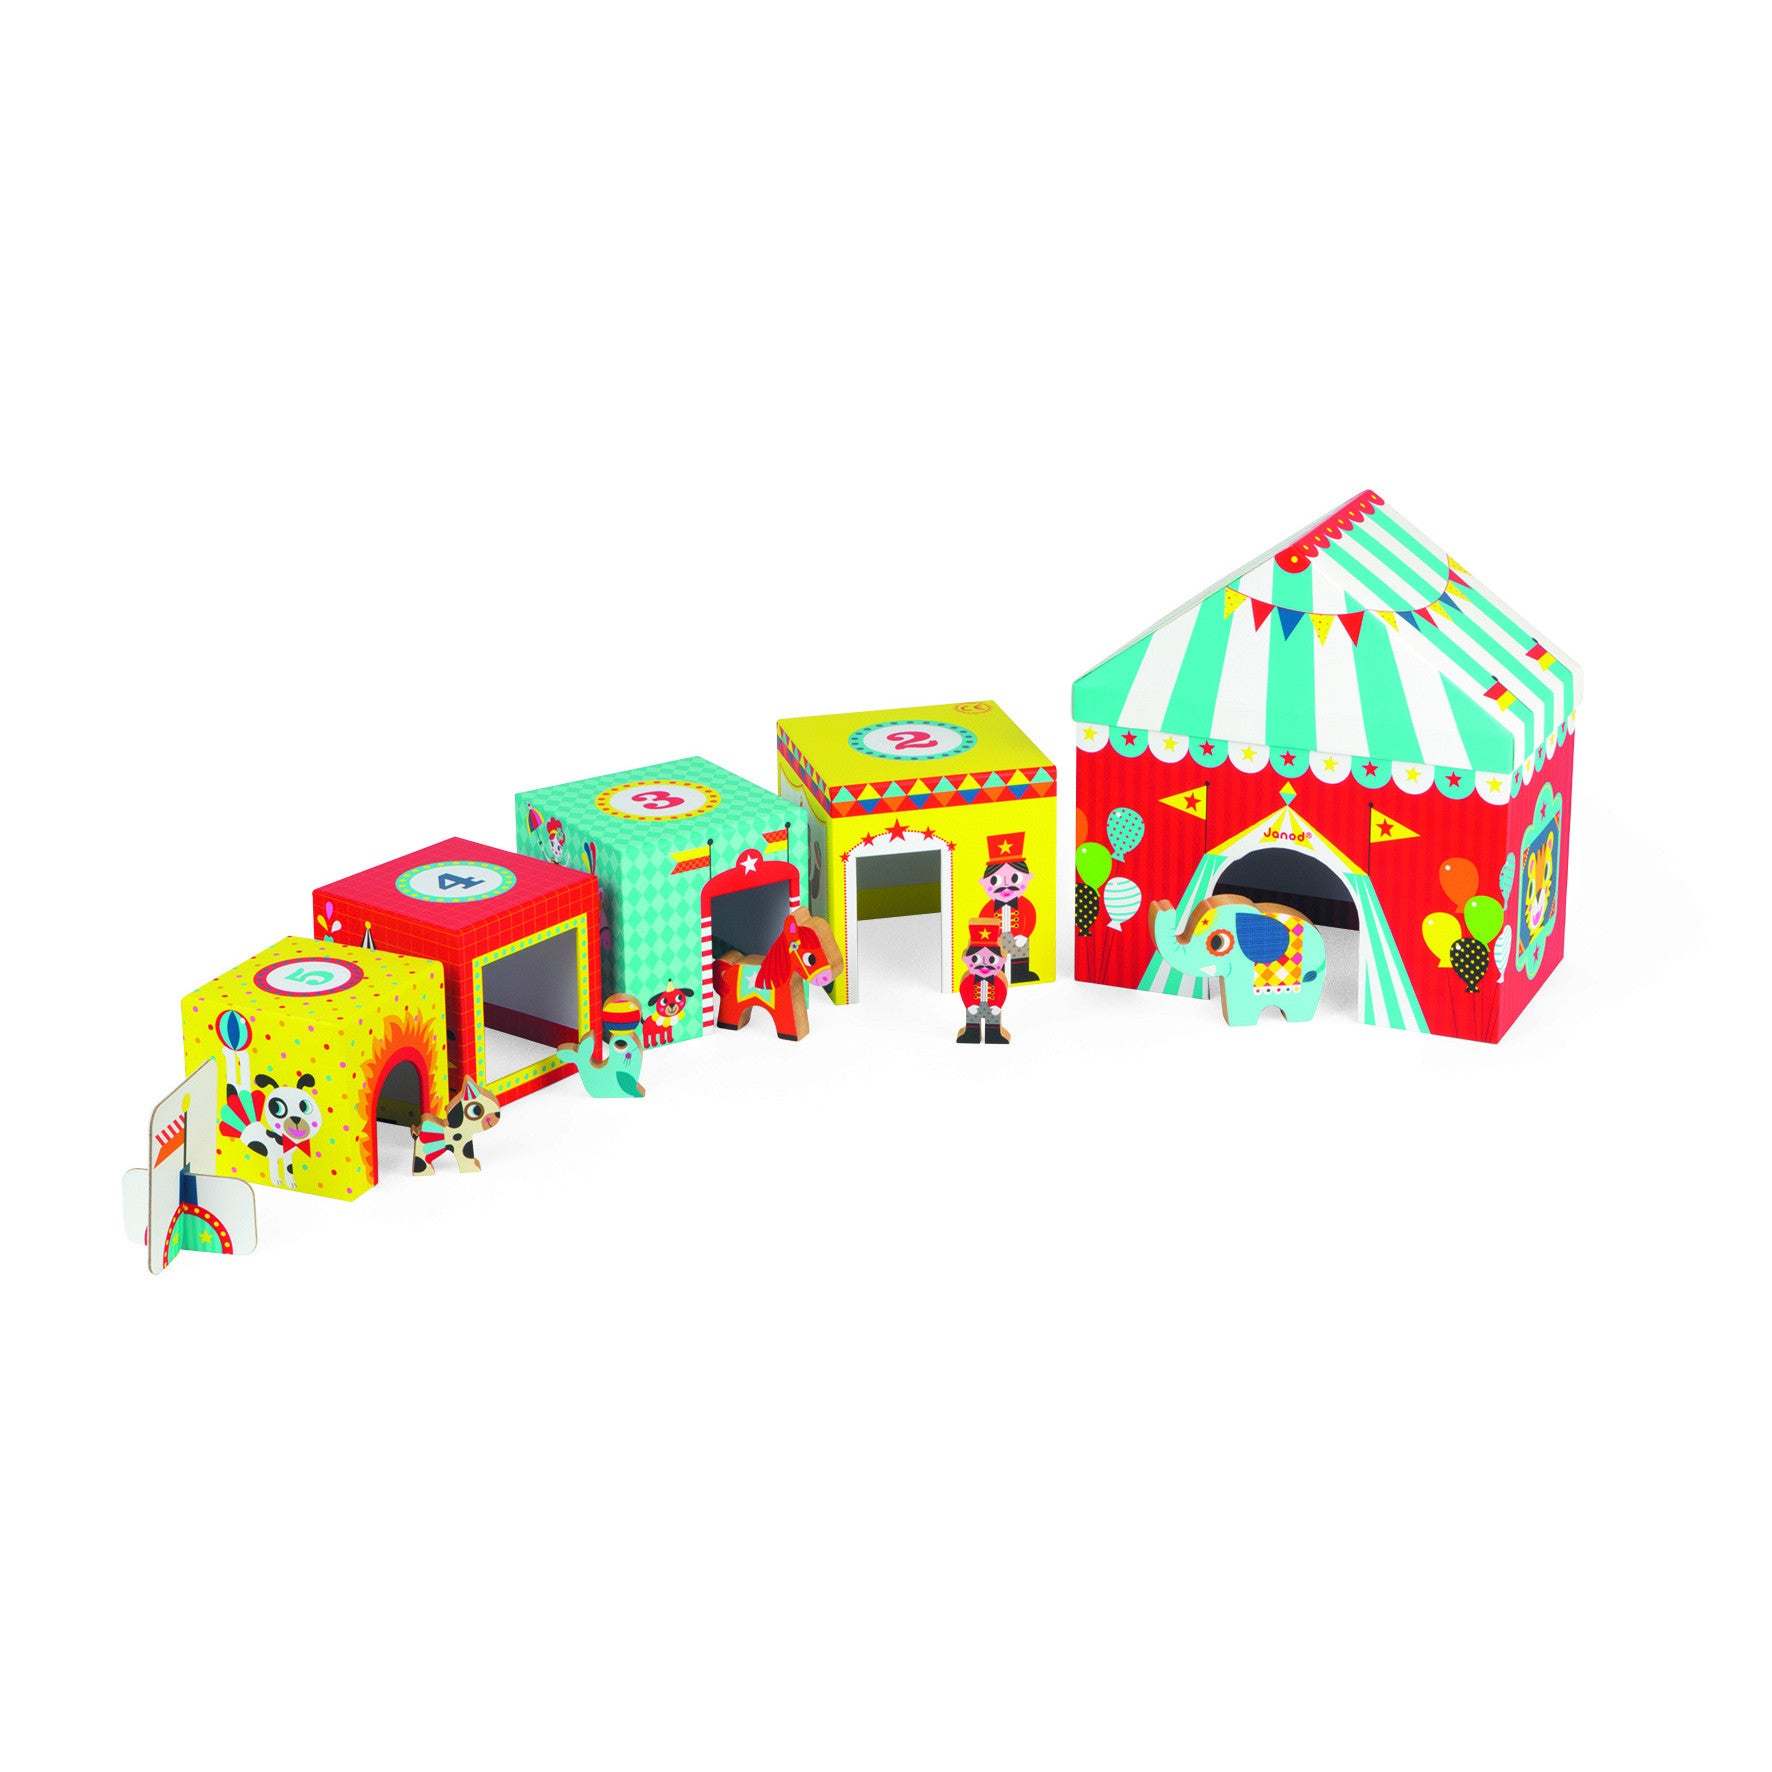 Multikub Circus - Janod - Little Citizens Boutique  - 1